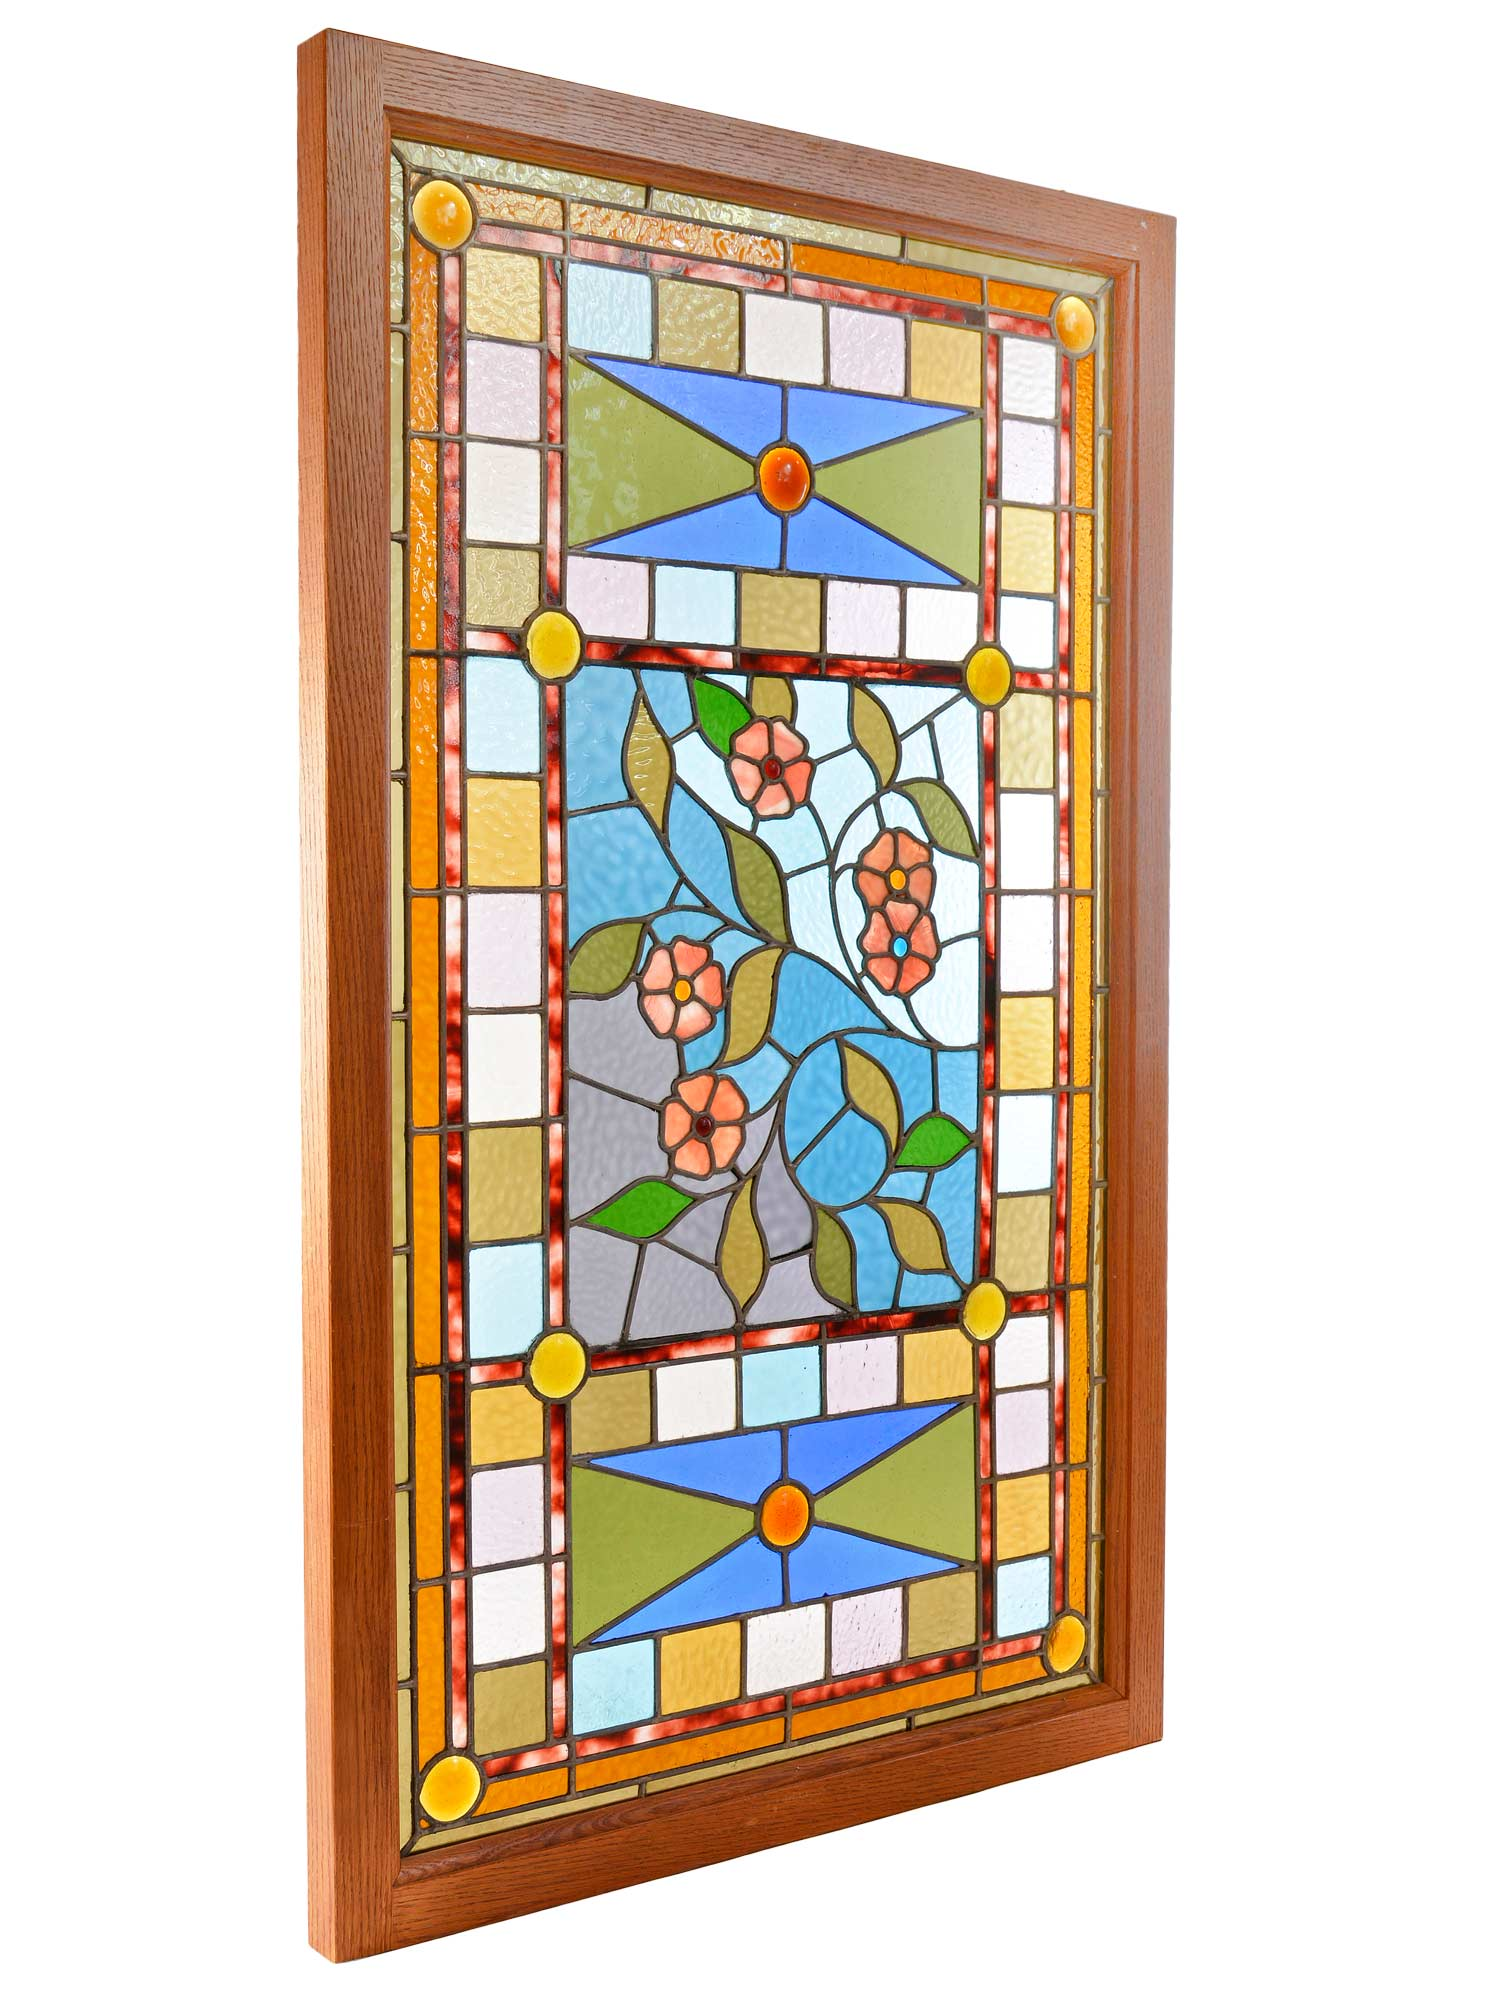 46377-aesthetic-victorian-floral-window-angle.jpg